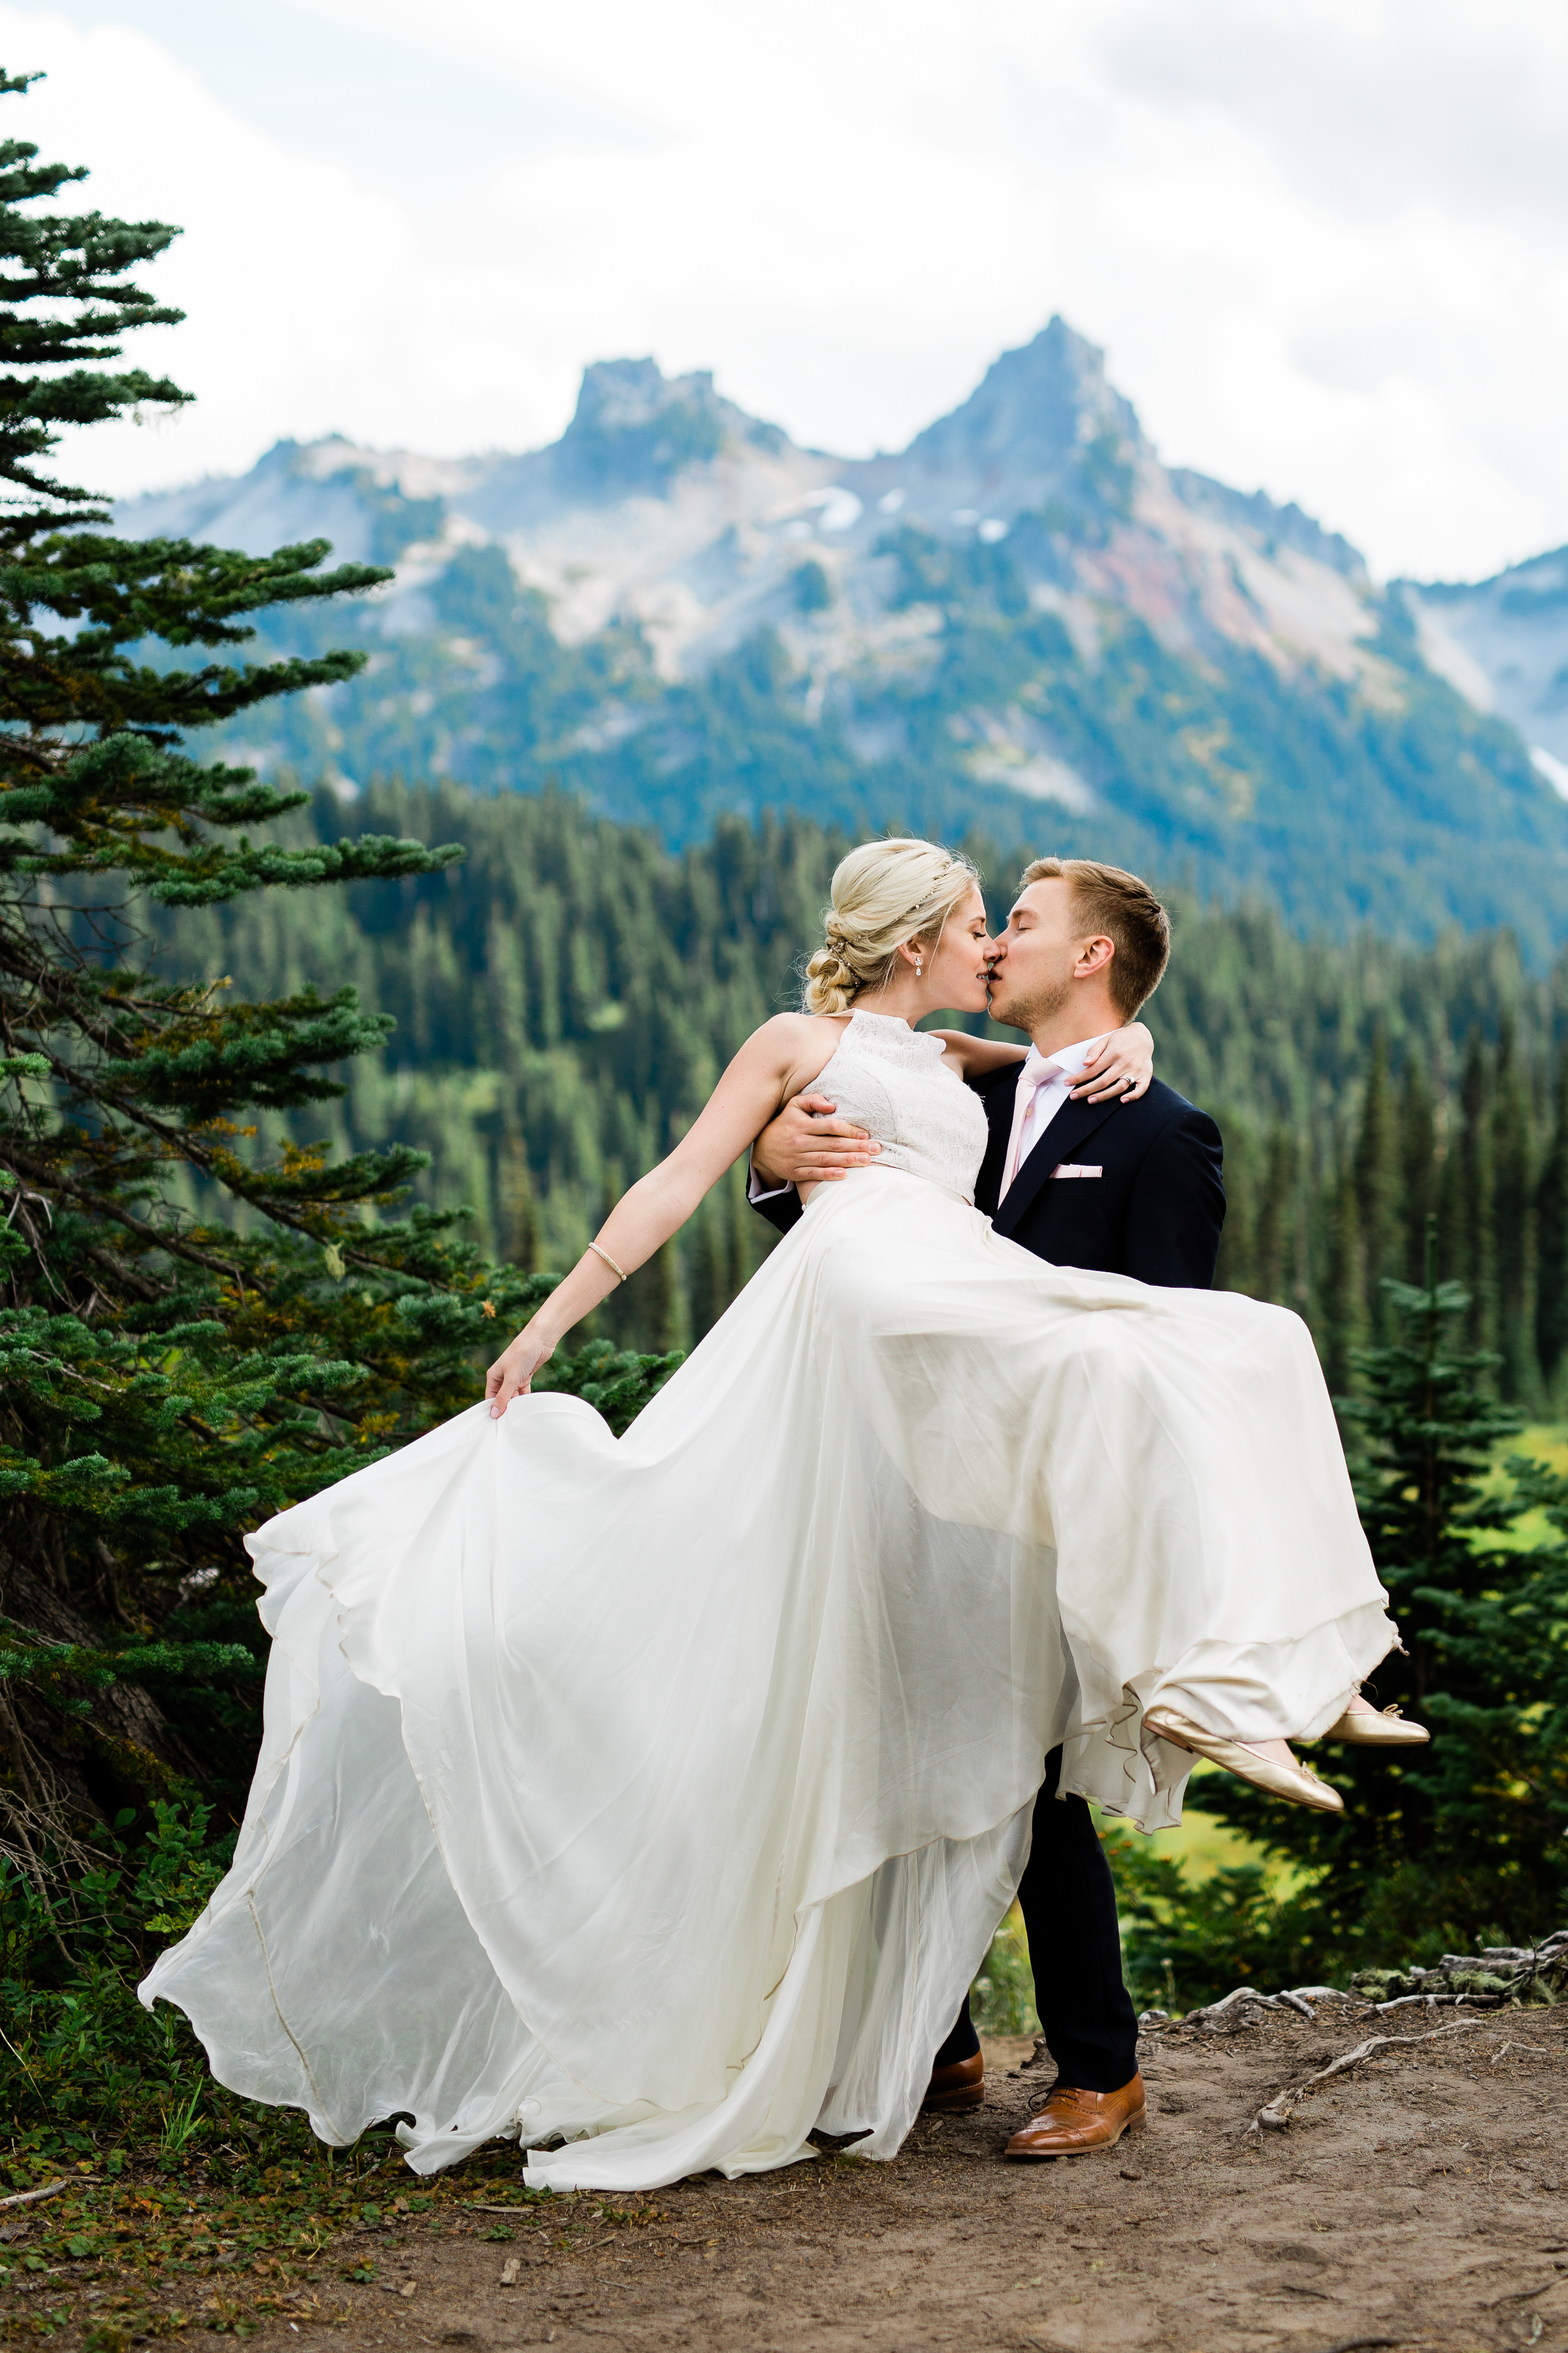 romantic-couple-portrait-with-nw-moutain-background-by-cameron-zegers-photography